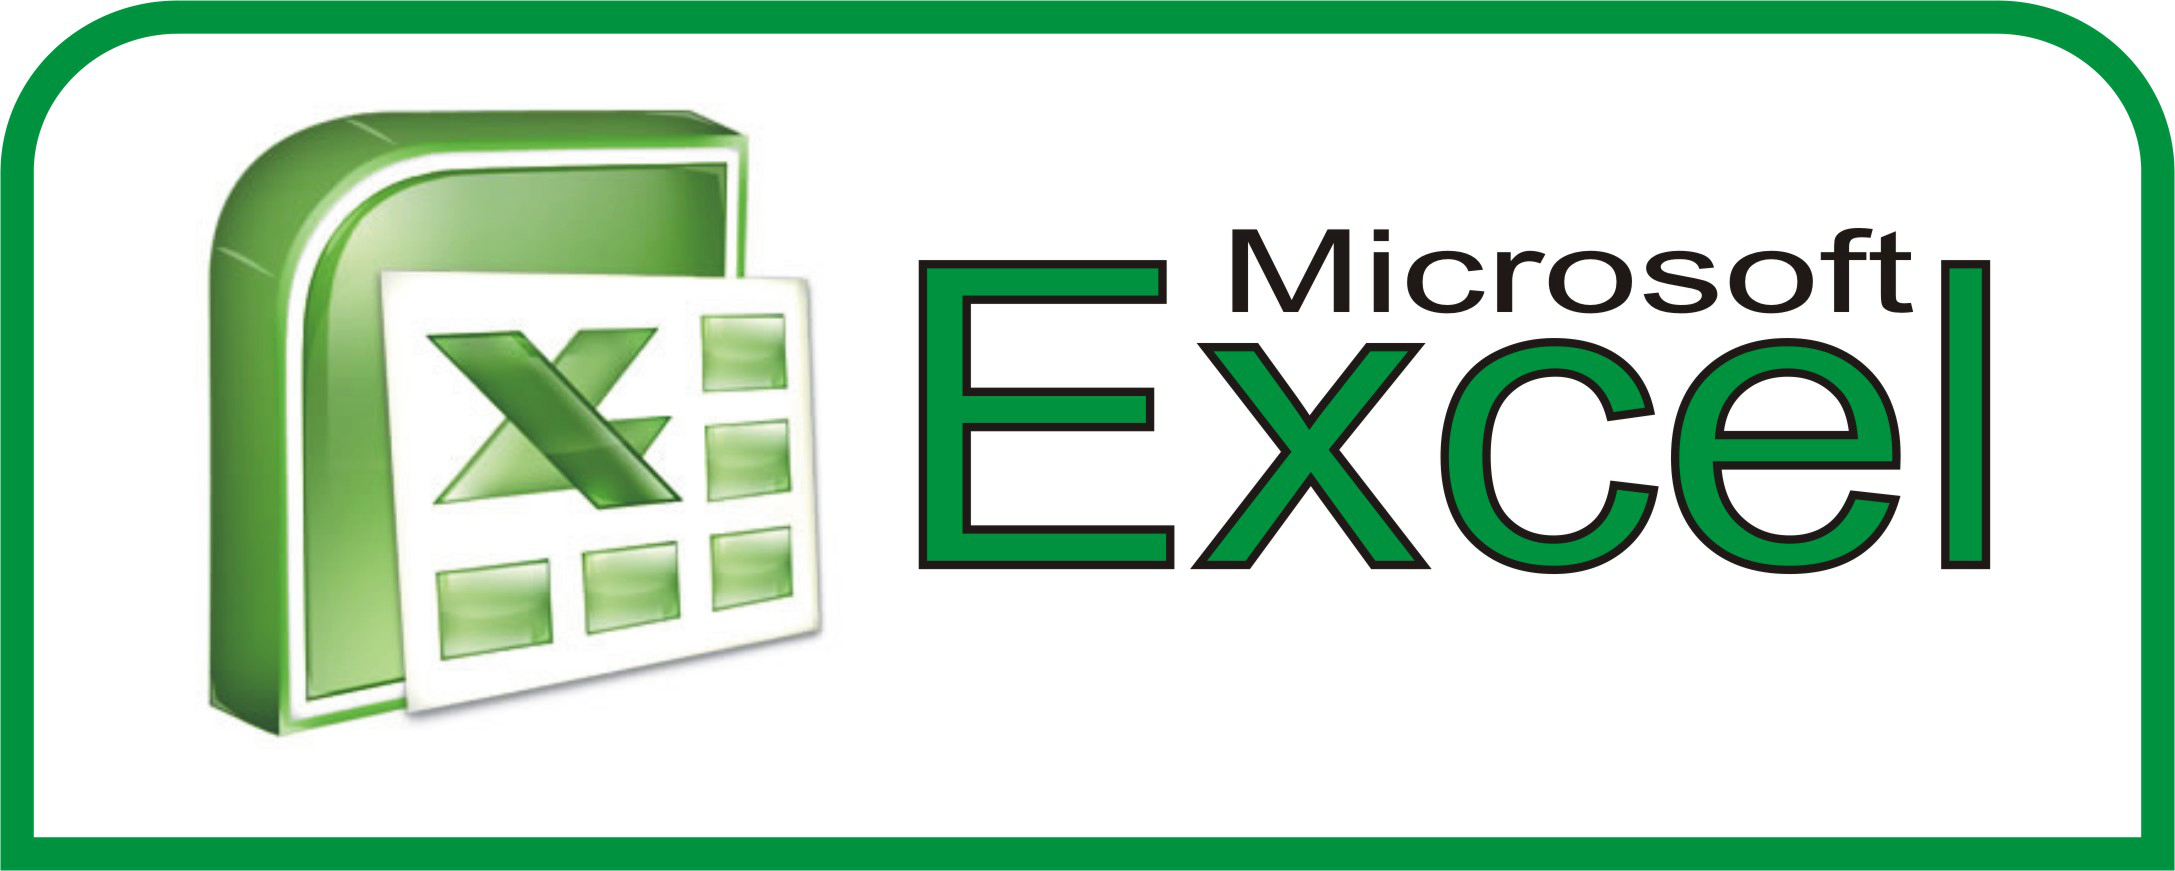 Ediblewildsus  Gorgeous  Excel Shortcuts You Probably Didnt Know About  Techdissected With Fair Excel Cpk Besides Excel Bullet Furthermore Generate Normal Distribution In Excel With Delectable Boost Excel Add In Also Excel How To Lock Formula In Addition Excel Replace Character In String And Create An Excel Macro As Well As Fantasy Baseball Excel Spreadsheet Additionally Create A Report As A Table In Excel  From Techdissectedcom With Ediblewildsus  Fair  Excel Shortcuts You Probably Didnt Know About  Techdissected With Delectable Excel Cpk Besides Excel Bullet Furthermore Generate Normal Distribution In Excel And Gorgeous Boost Excel Add In Also Excel How To Lock Formula In Addition Excel Replace Character In String From Techdissectedcom